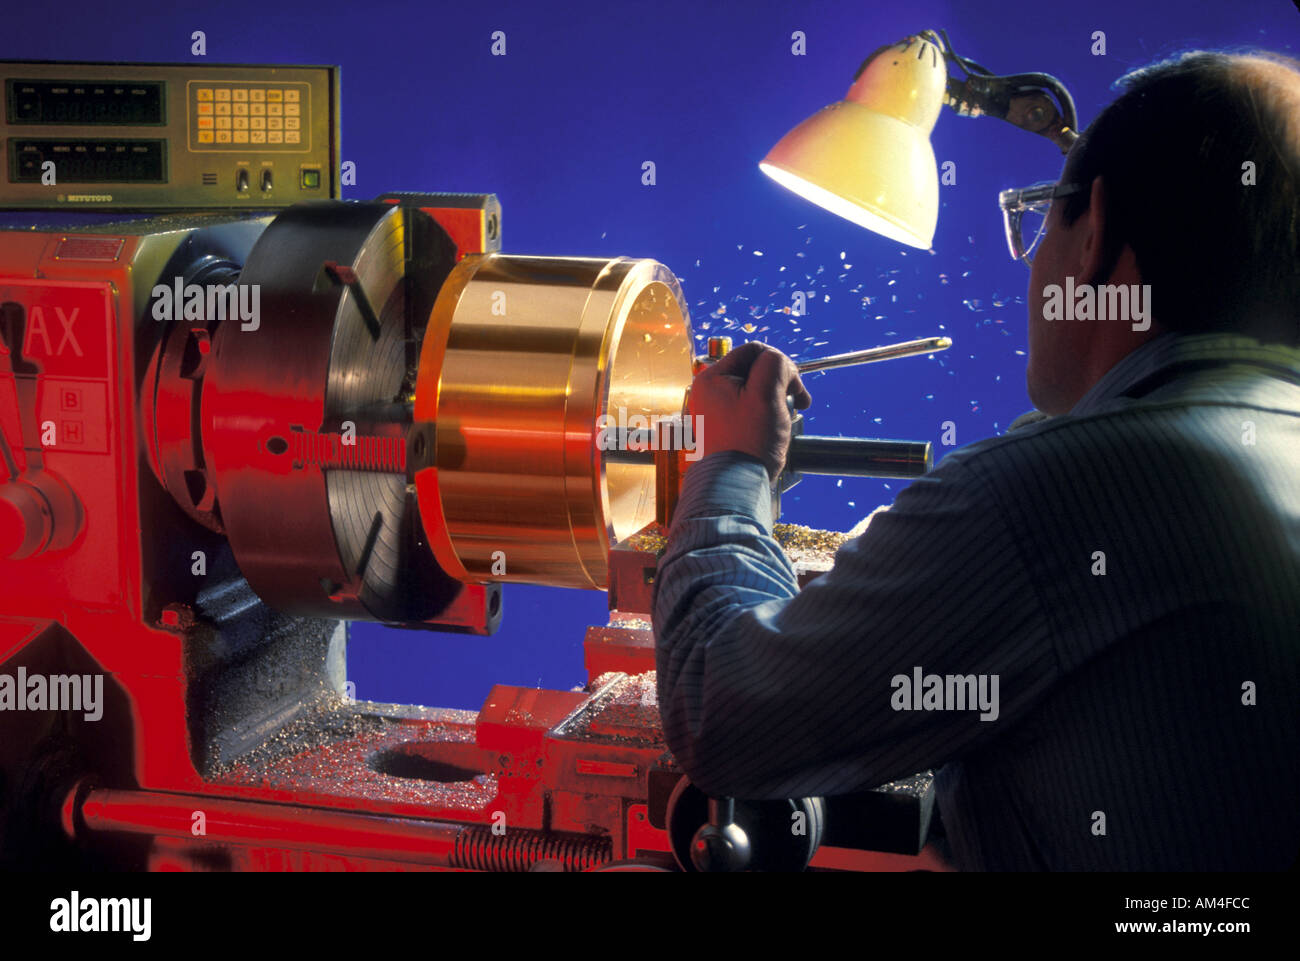 machine shop worker cuts into brass on a metal lathe - Stock Image